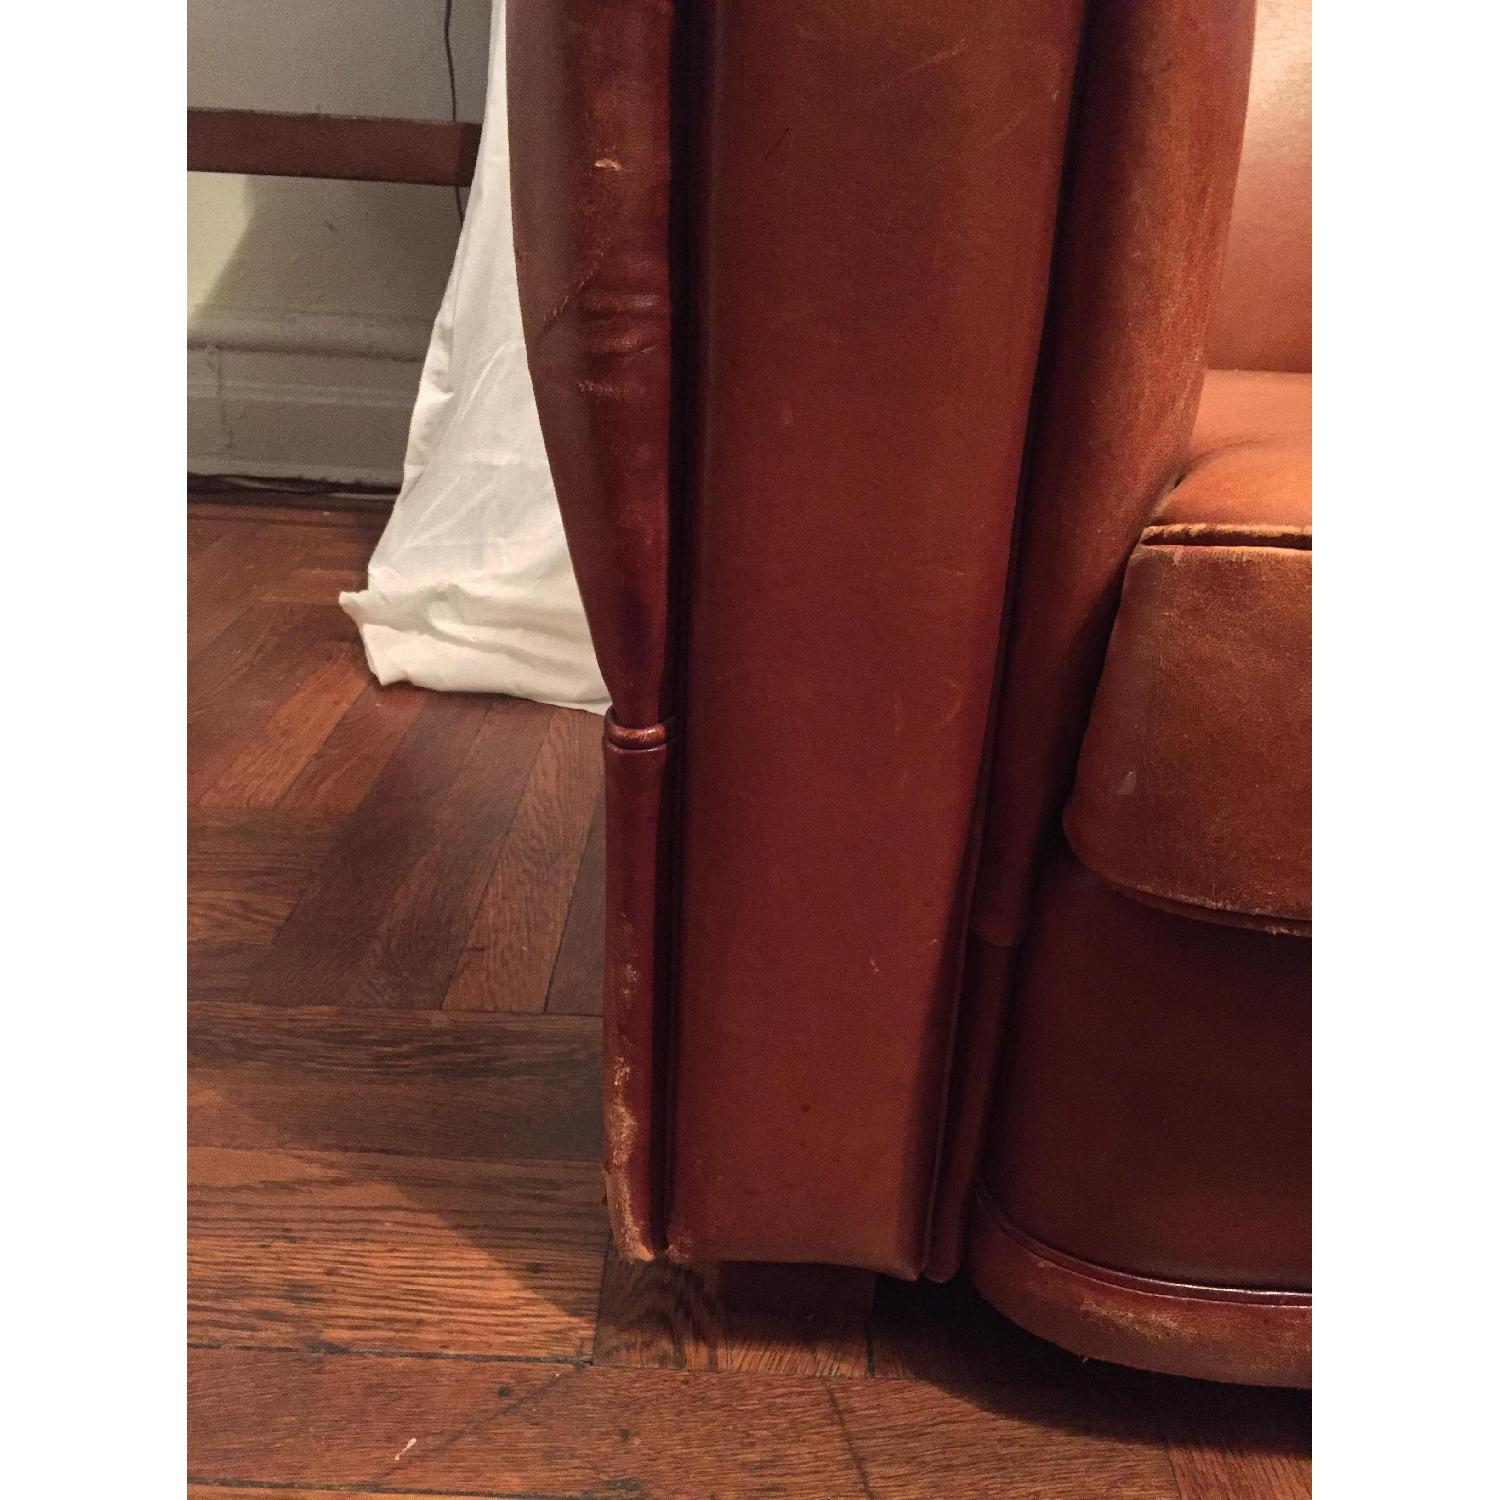 Portico Leather Club Chair - image-11